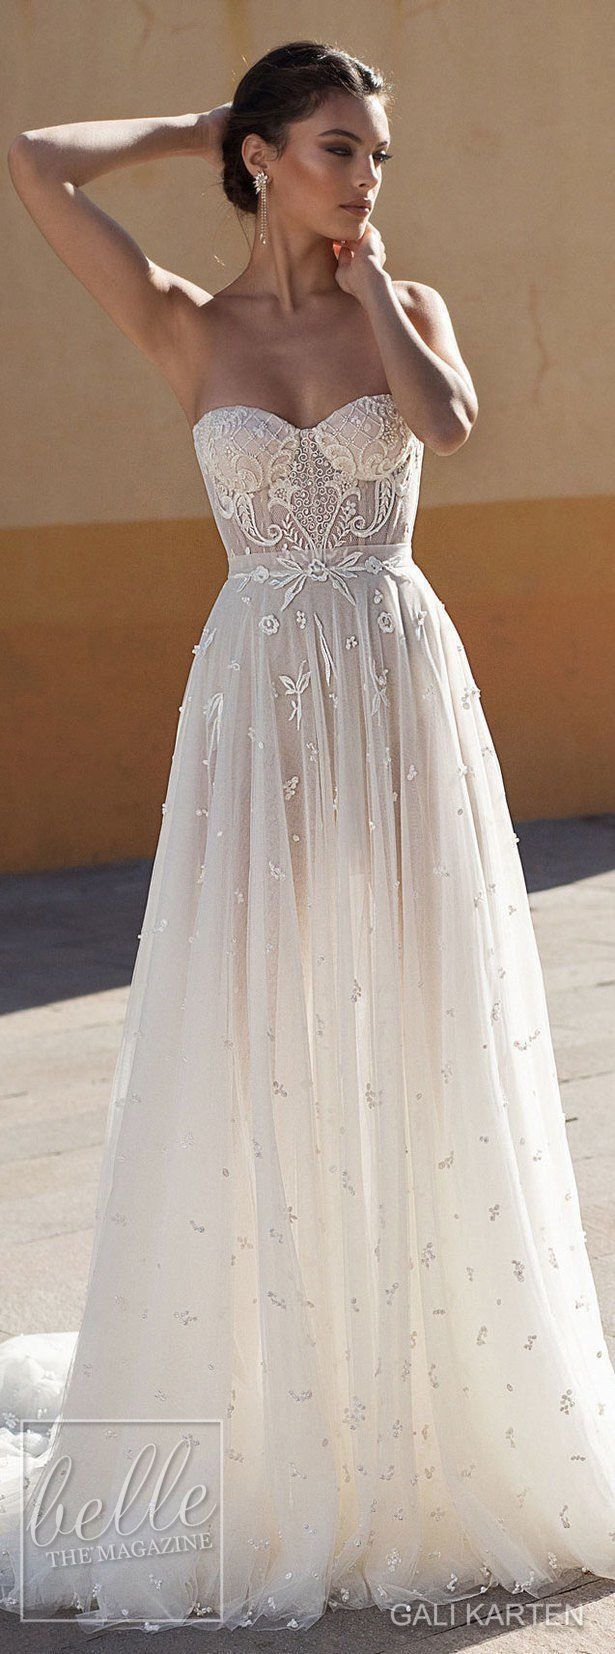 gali karten wedding dress 2018 burano bridal collection On acheter robe de mariée gali karten